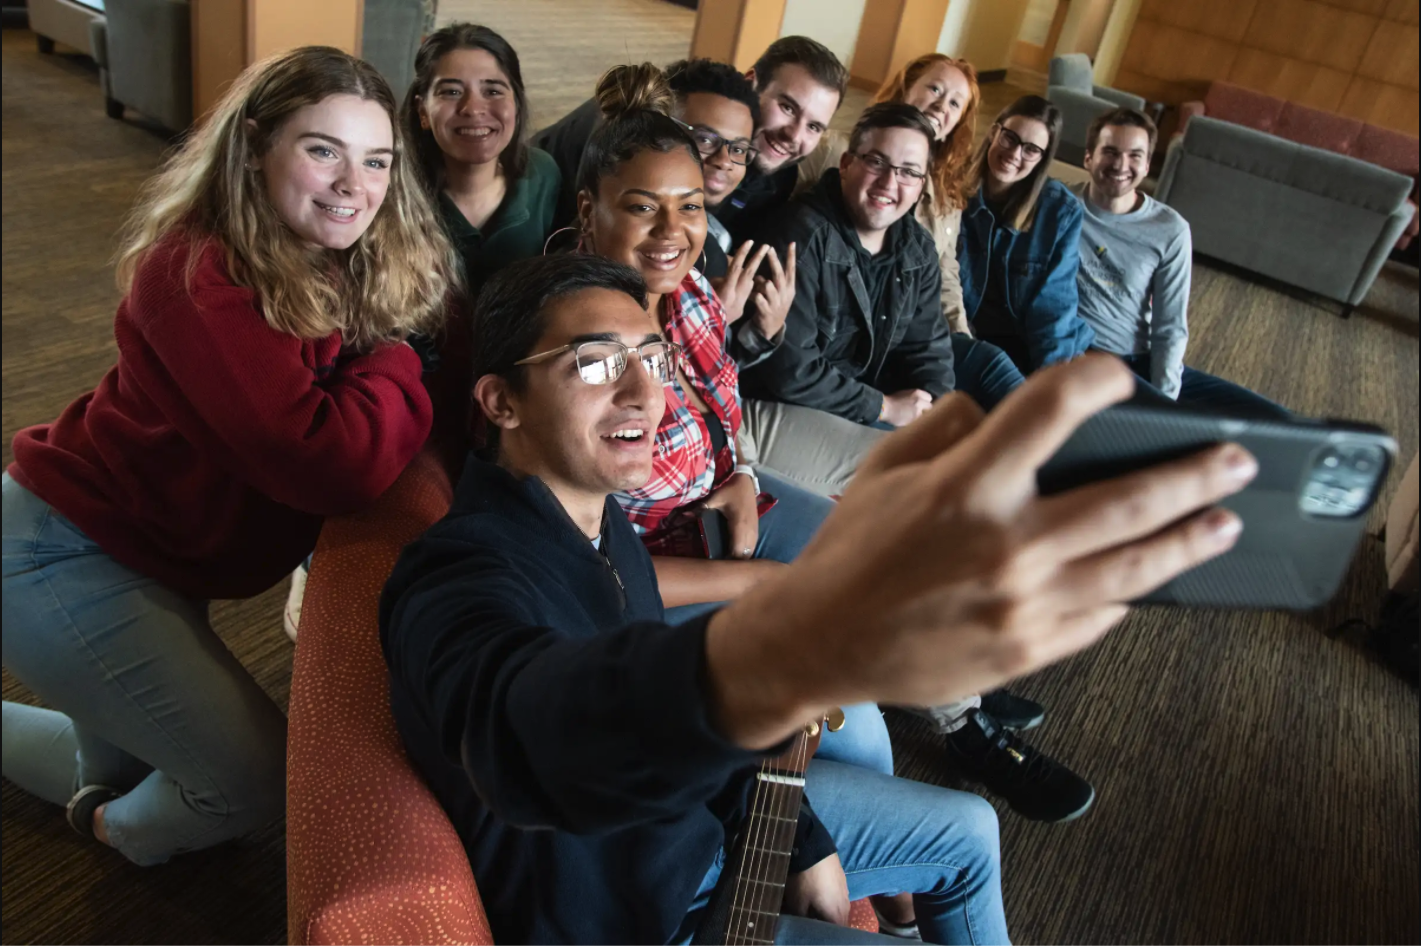 valpo students taking a photo together in a residence hall